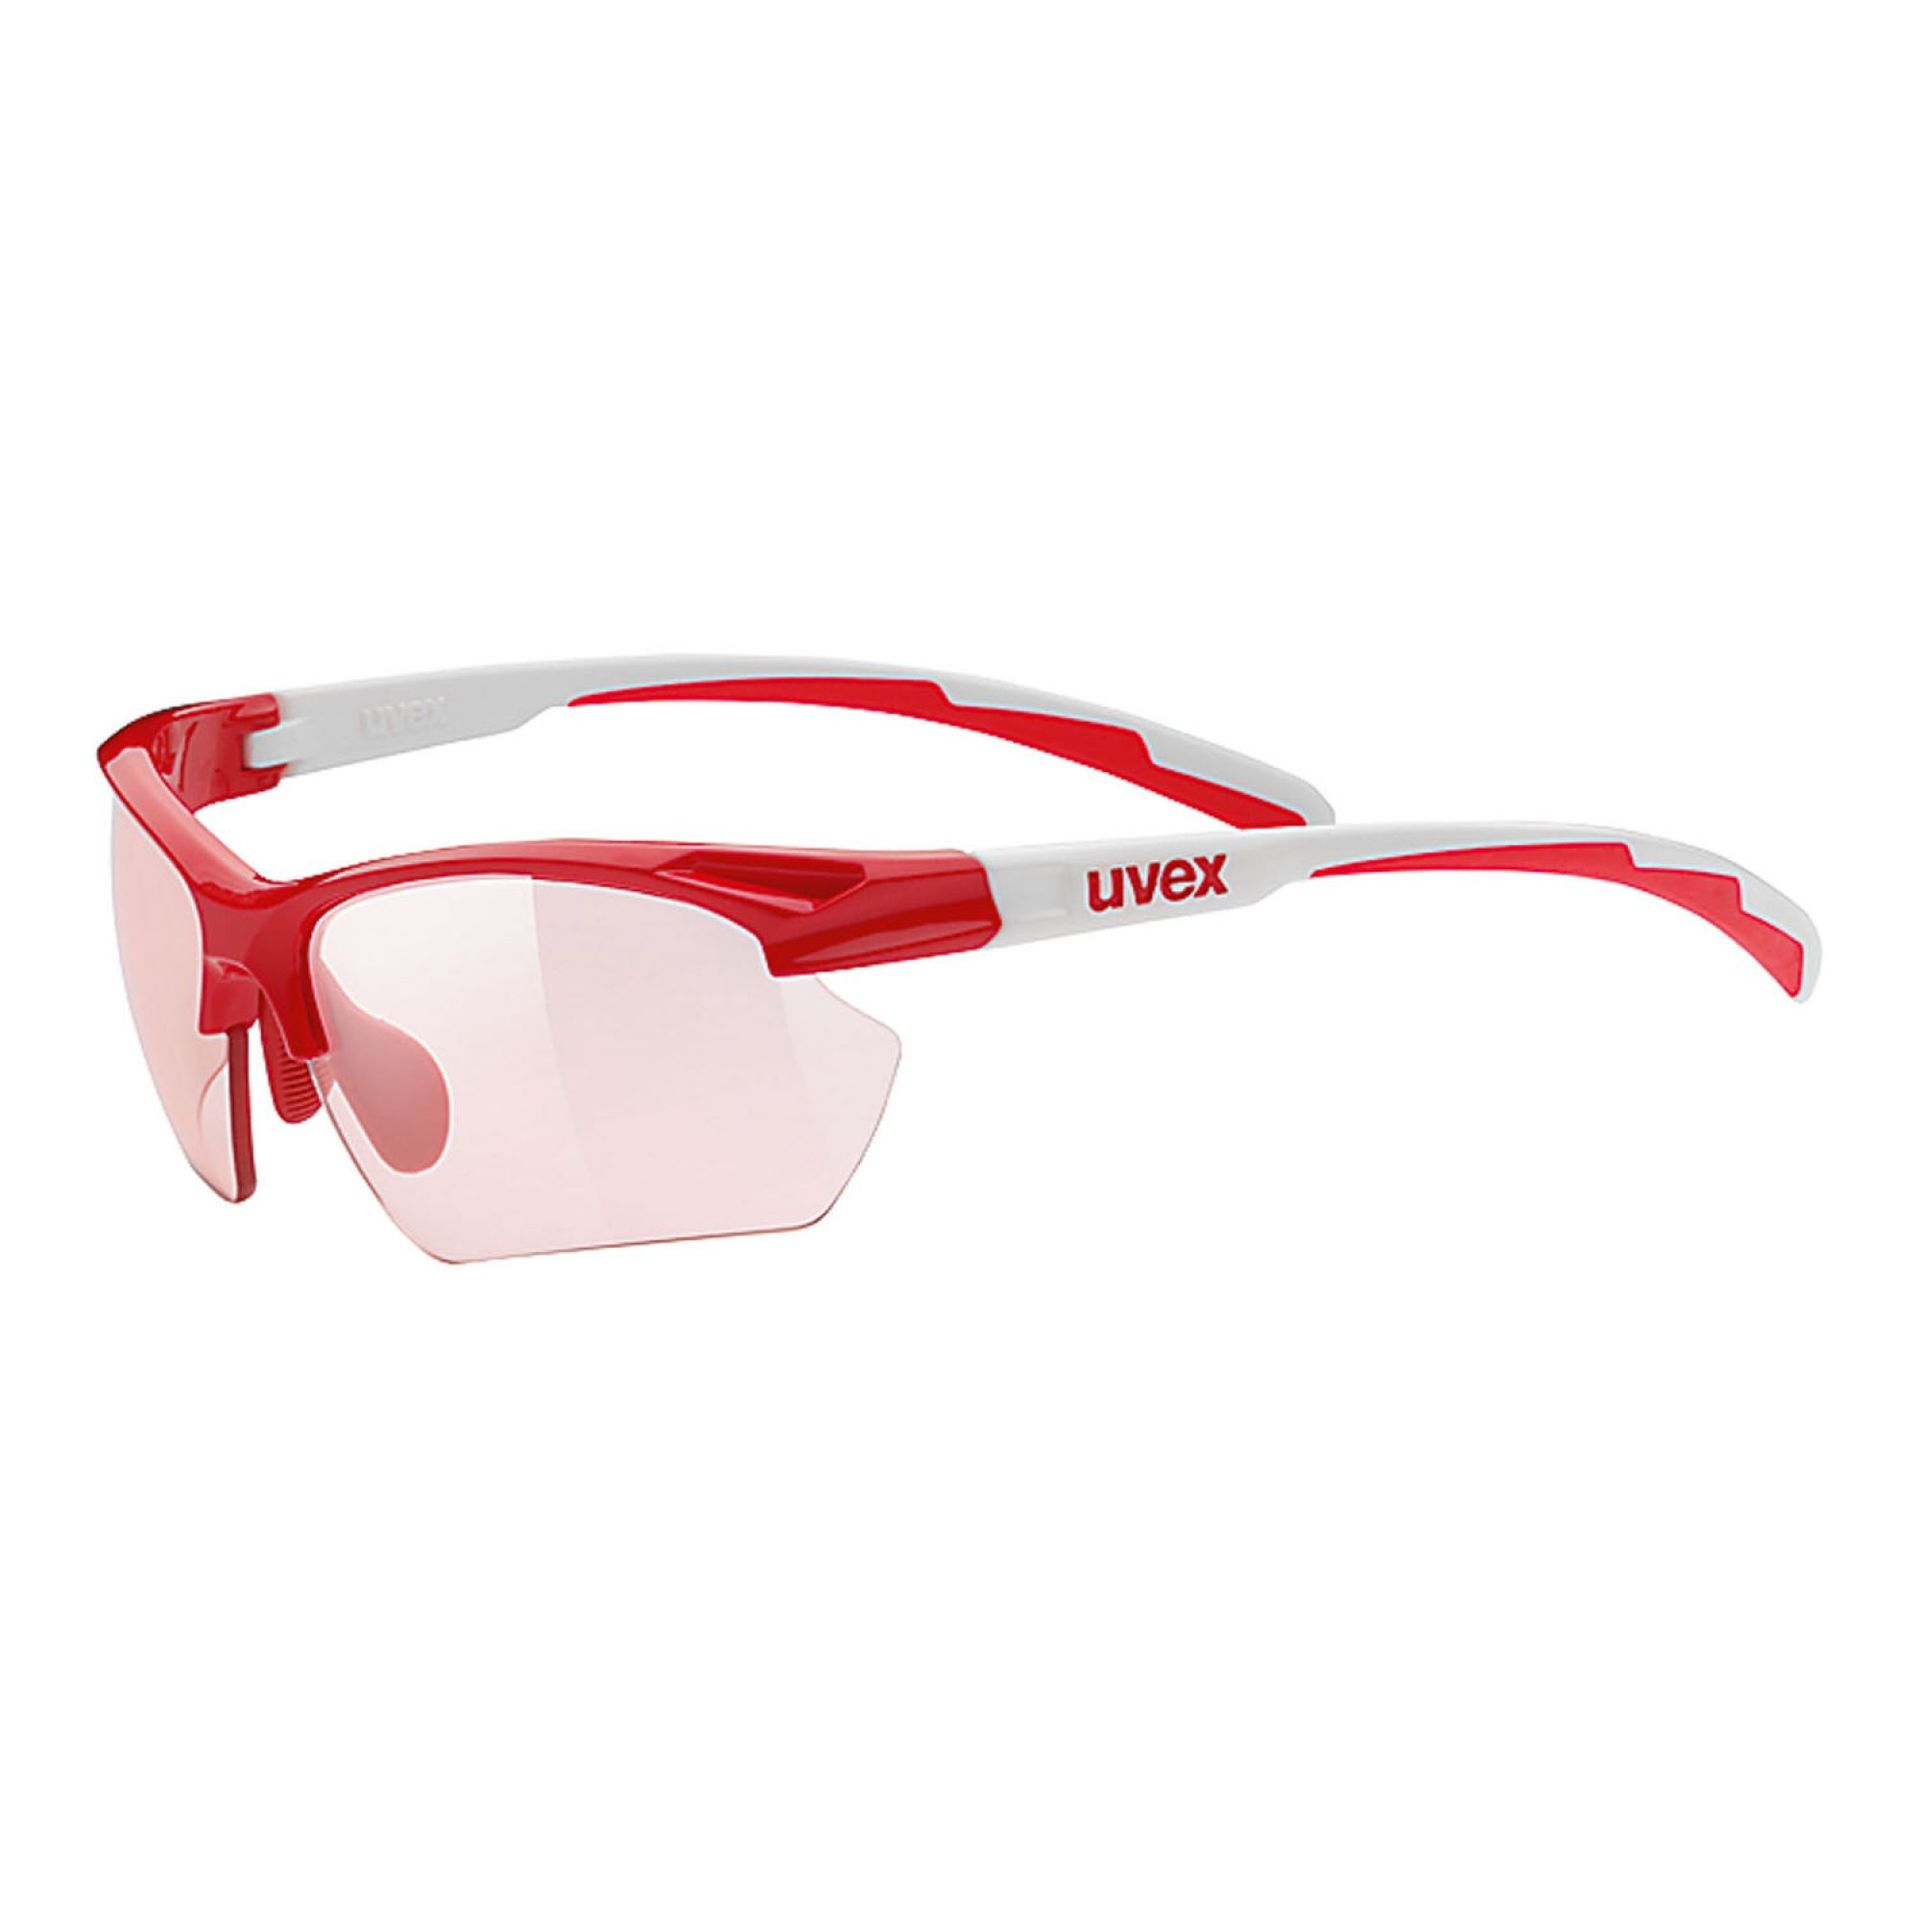 OKULARY UVEX SPORTSTYLE 802 SMALL RED WHITE